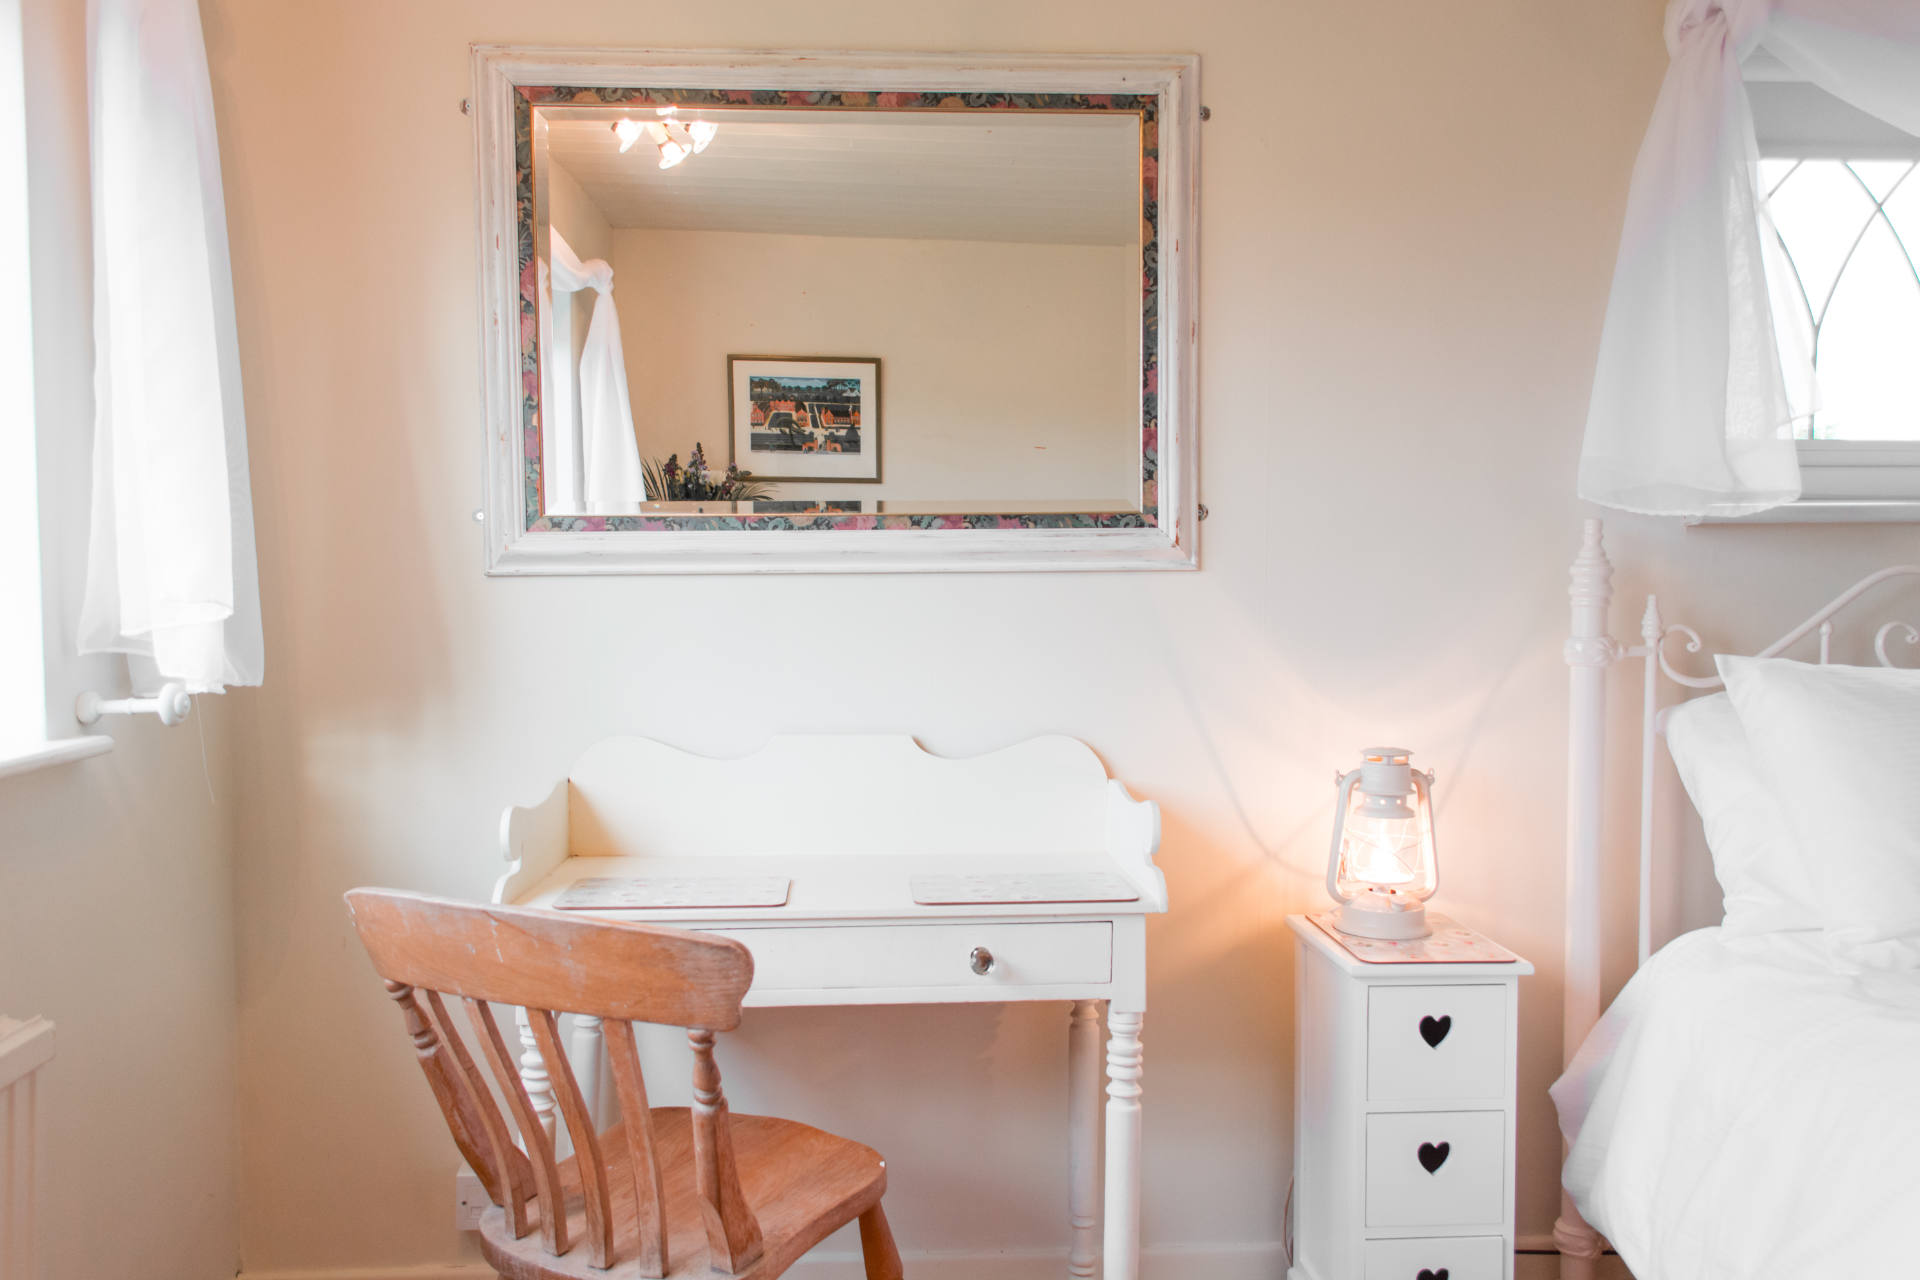 Dresser table, mirror and chair with lamp.